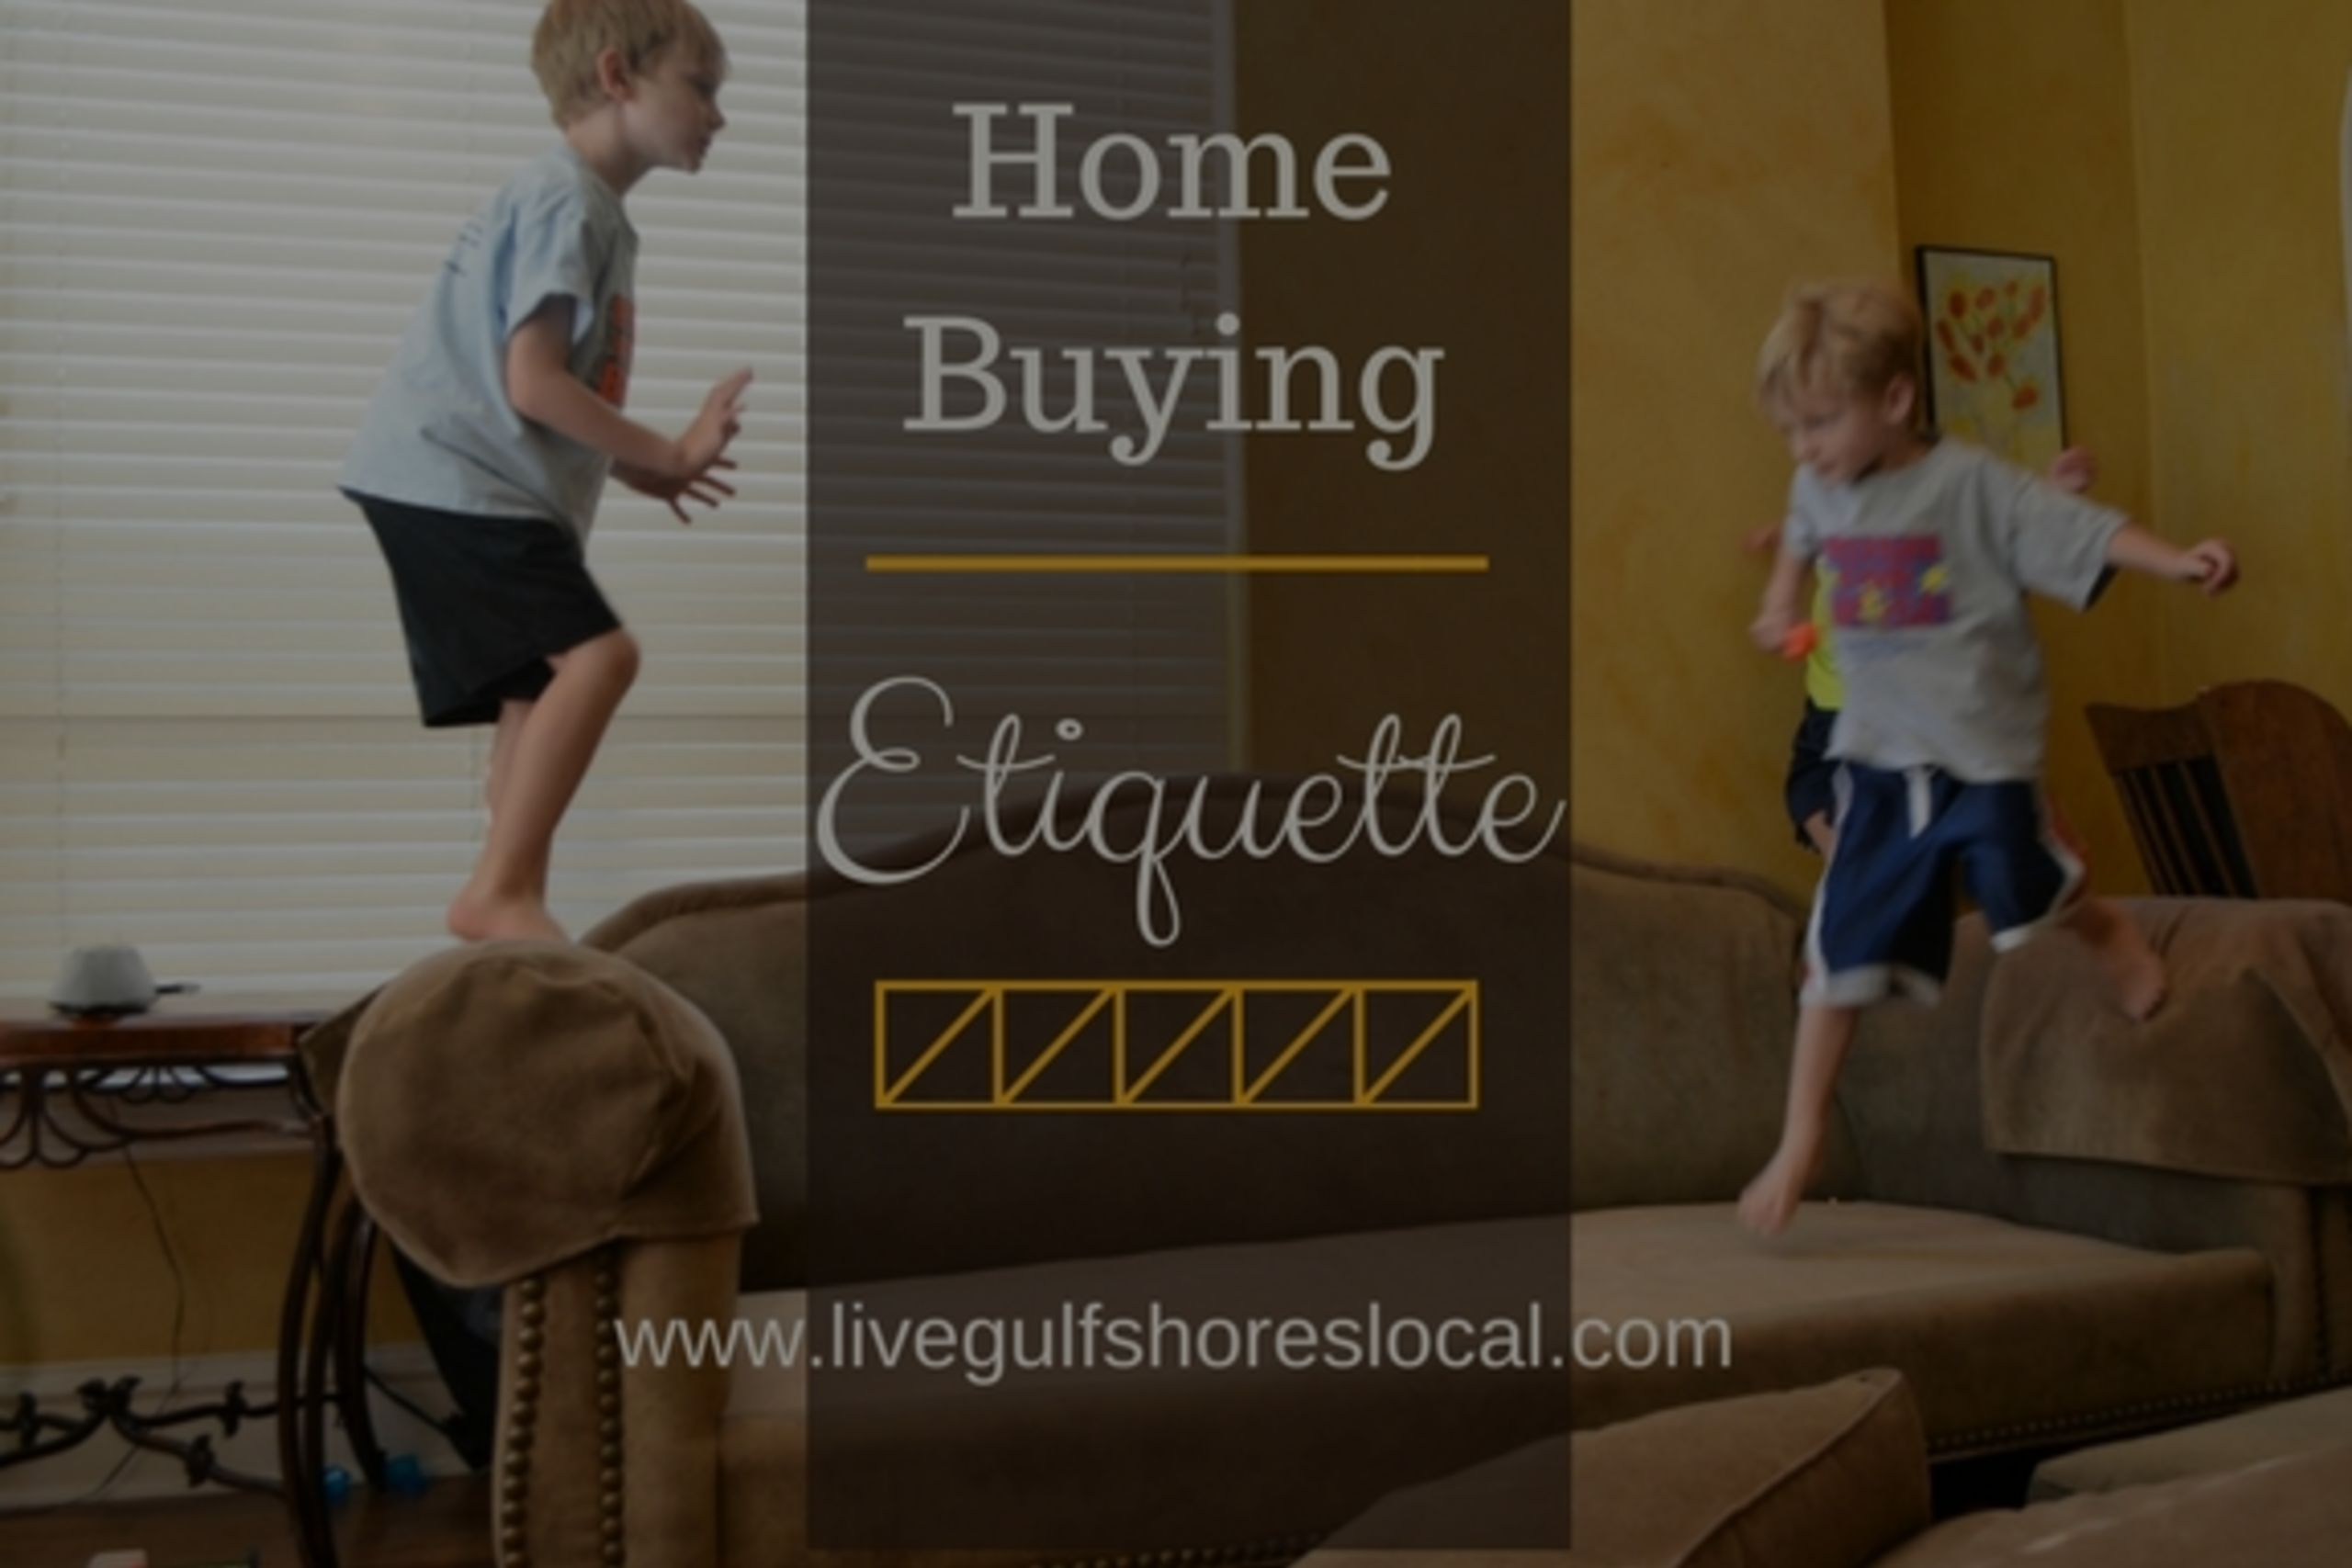 Buyer Etiquette When Looking at Homes